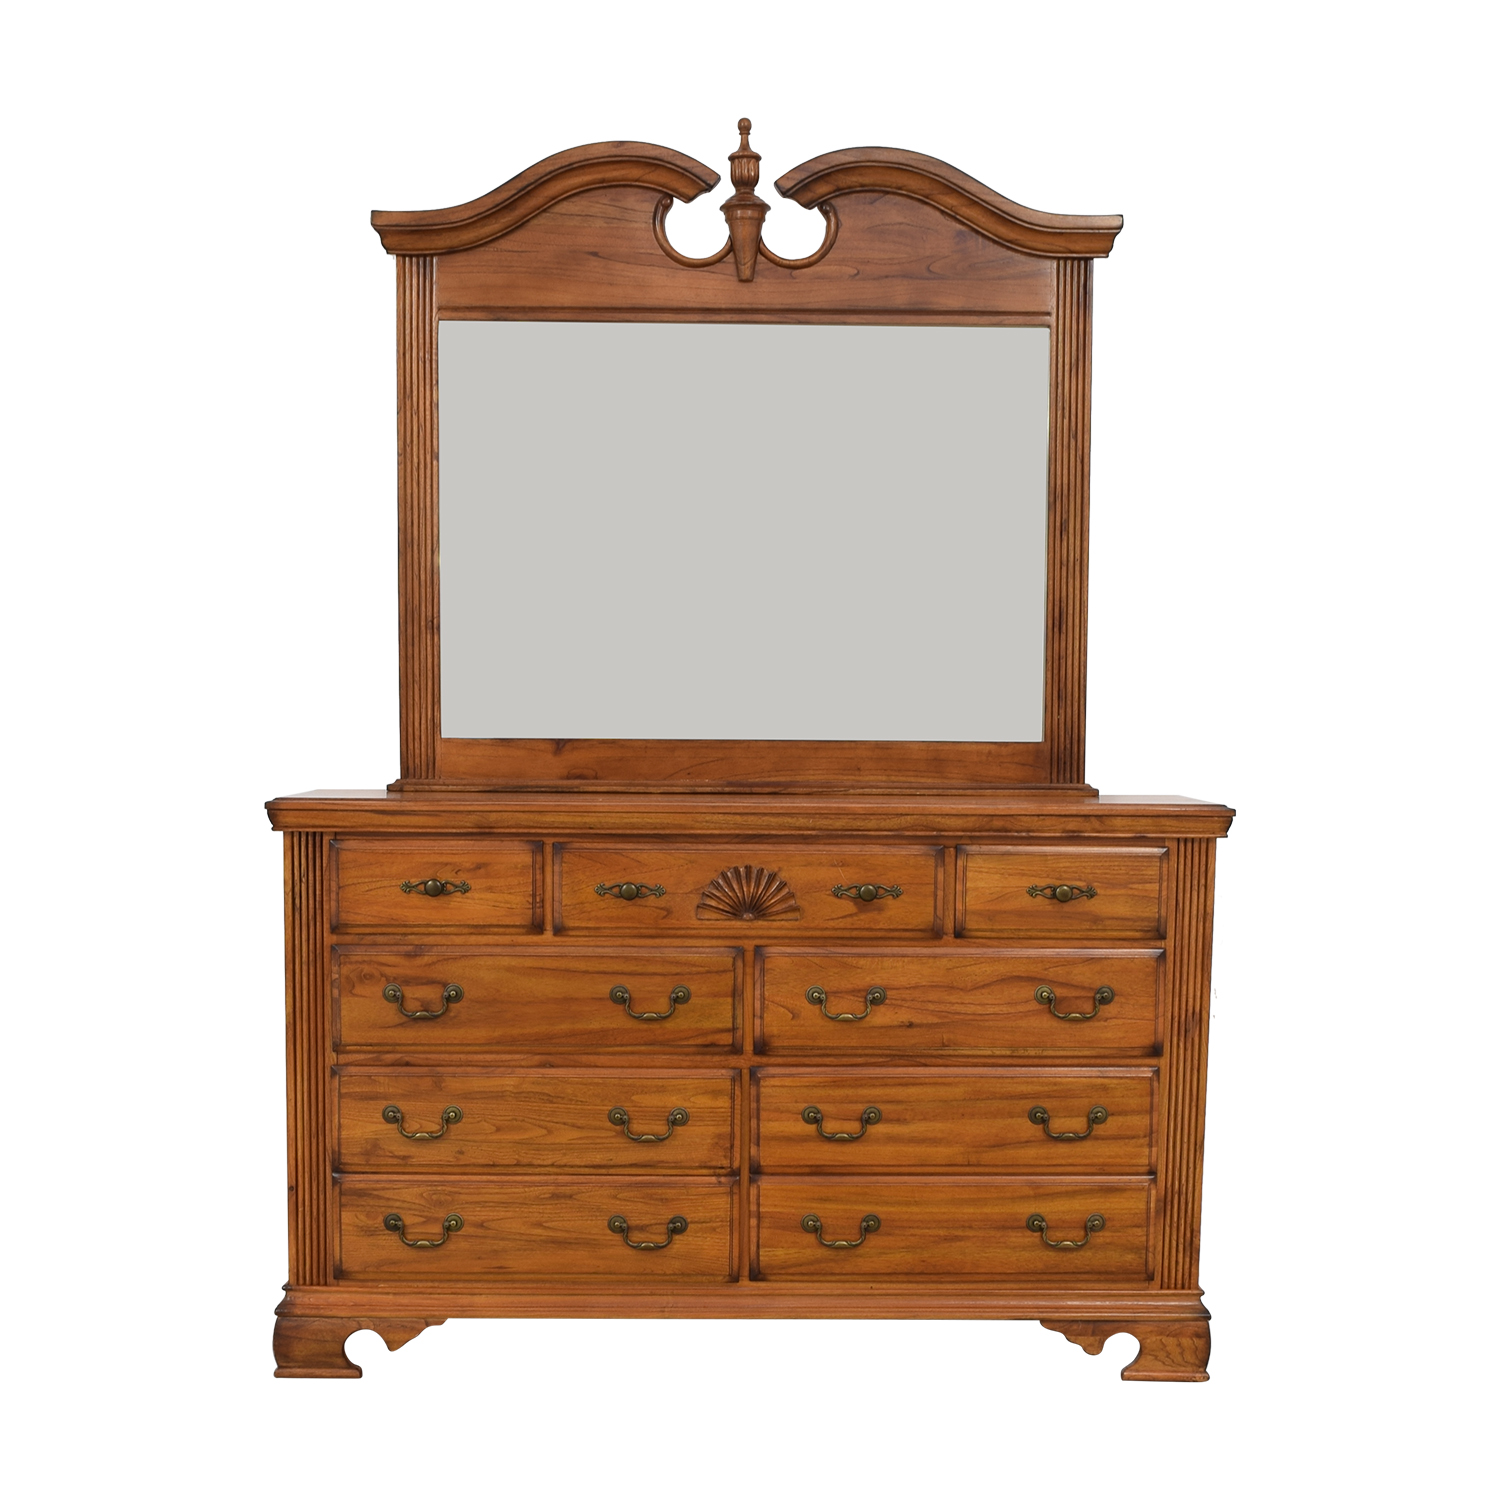 Millenia USA Millenia USA Seven Drawer Dresser with Mirror used